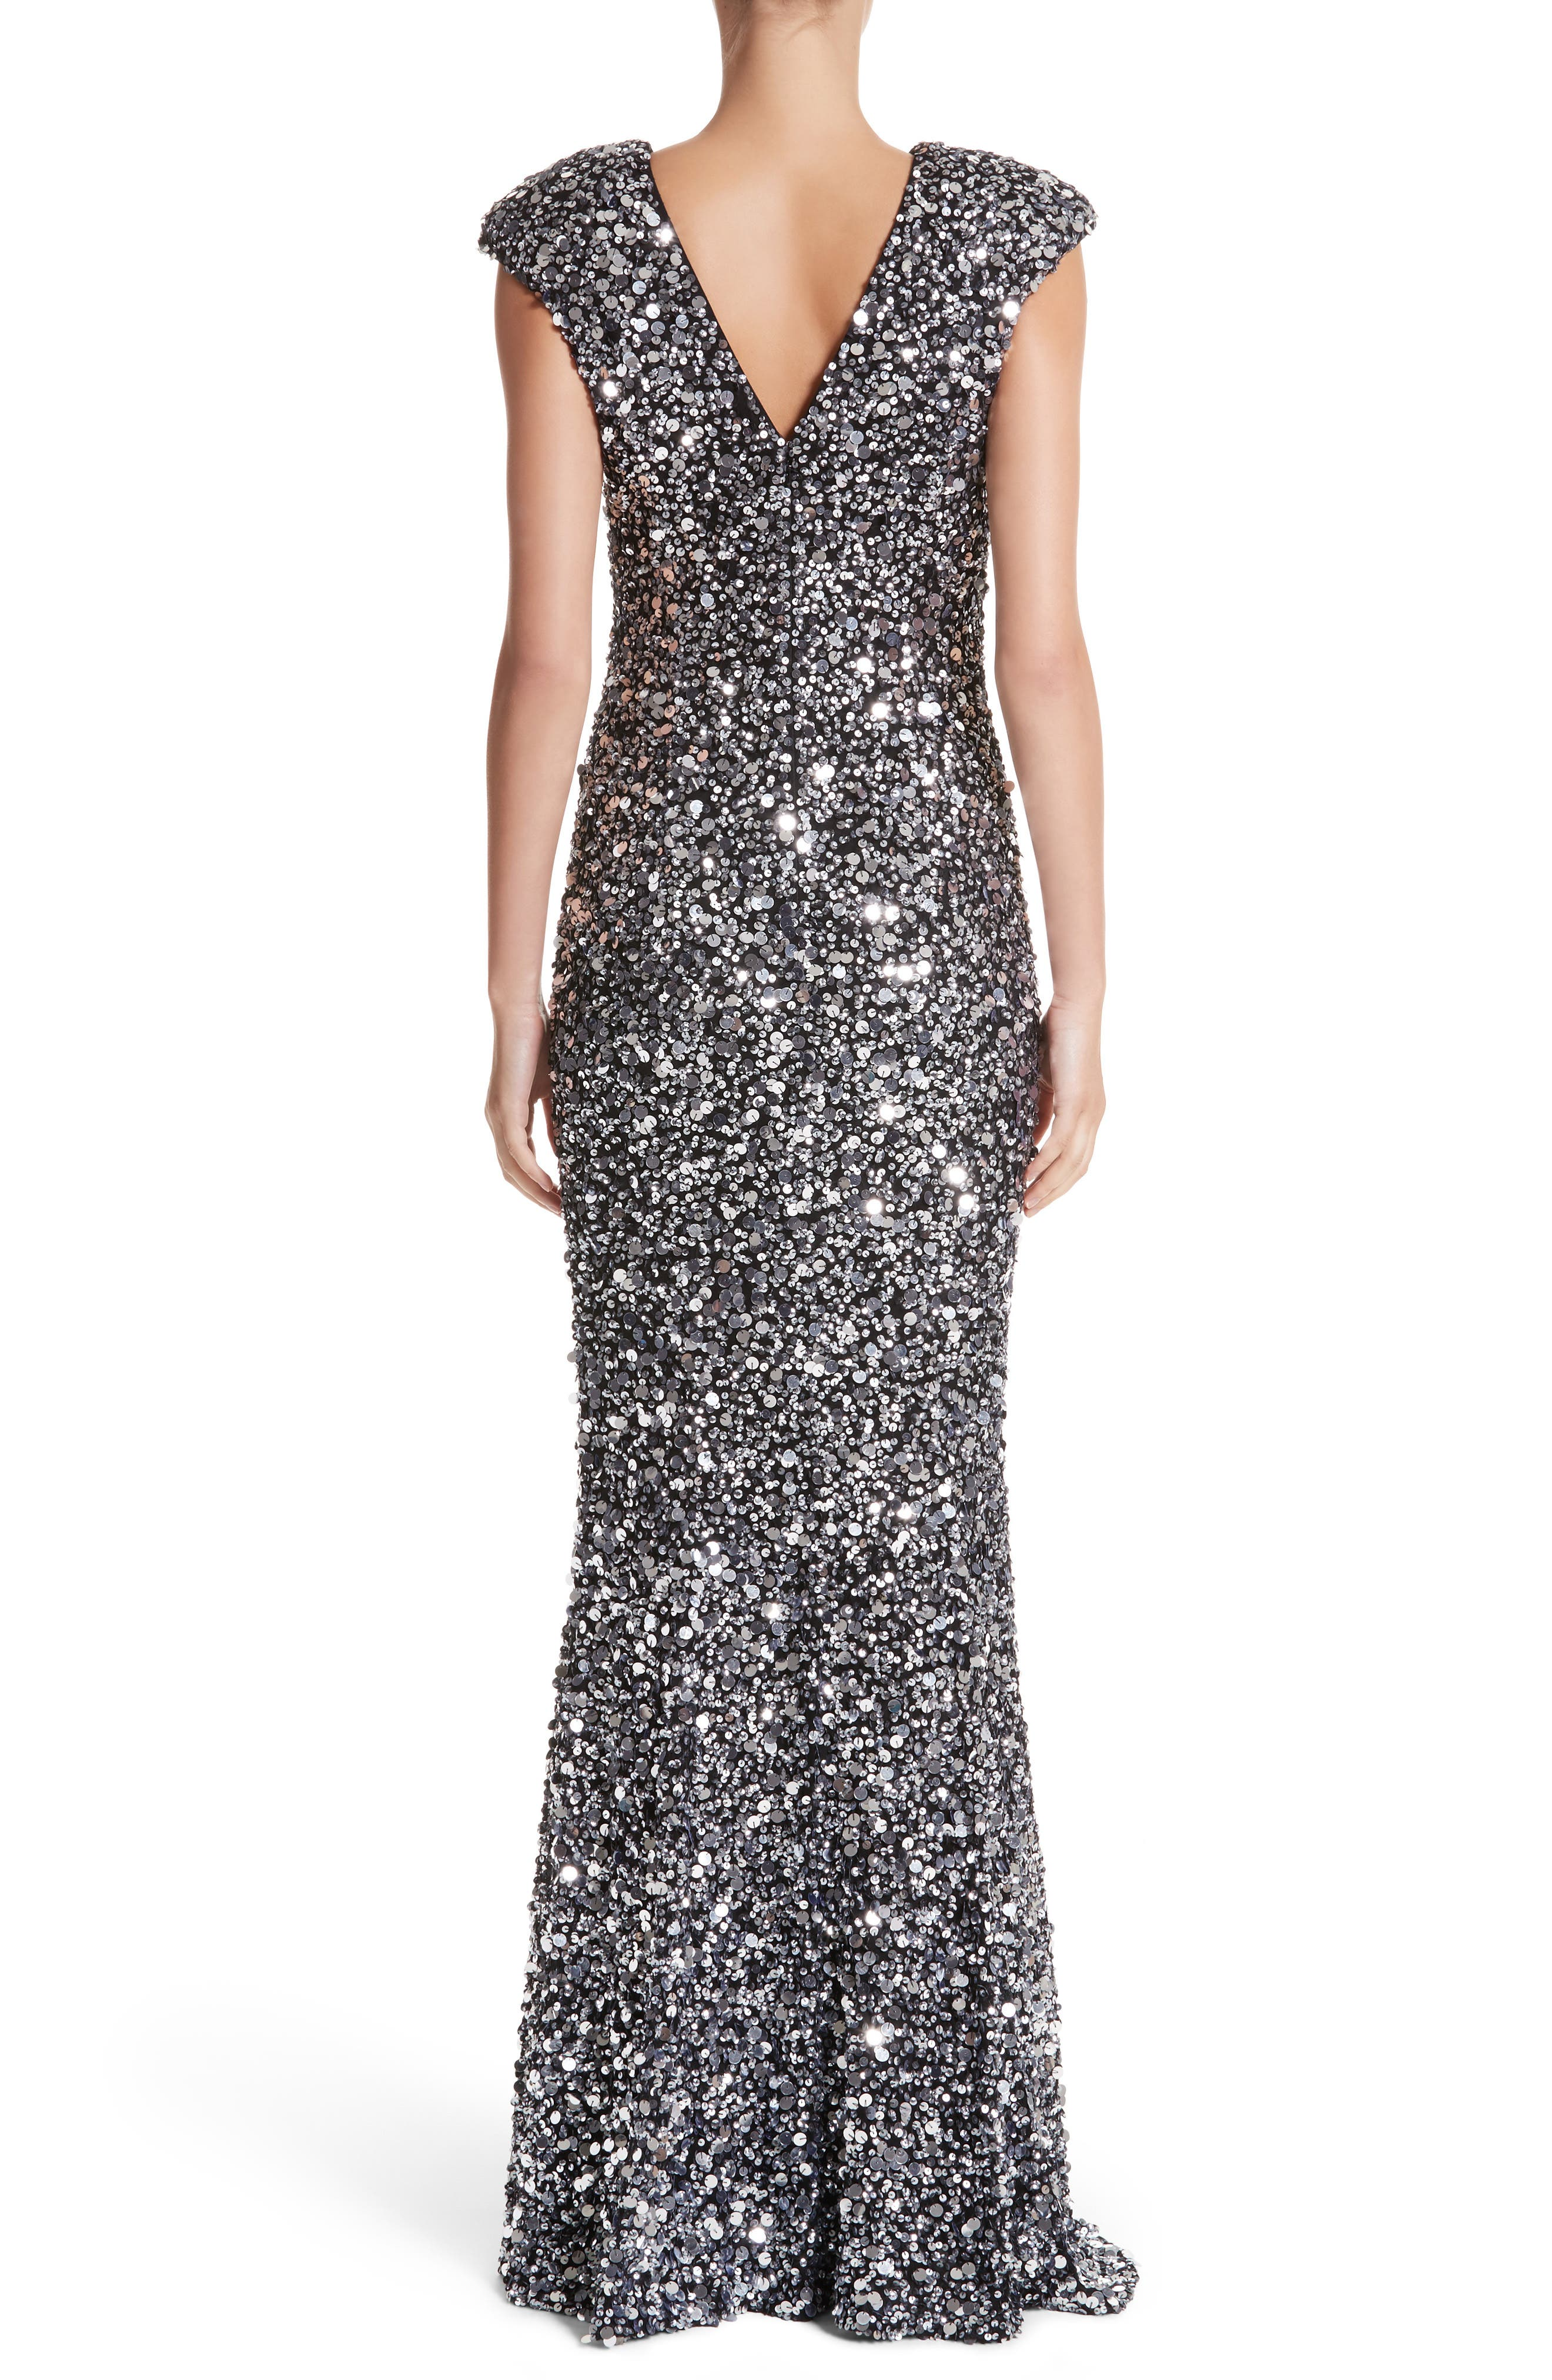 Hand Embellished Sequin Gown,                             Alternate thumbnail 3, color,                             Black/ Silver